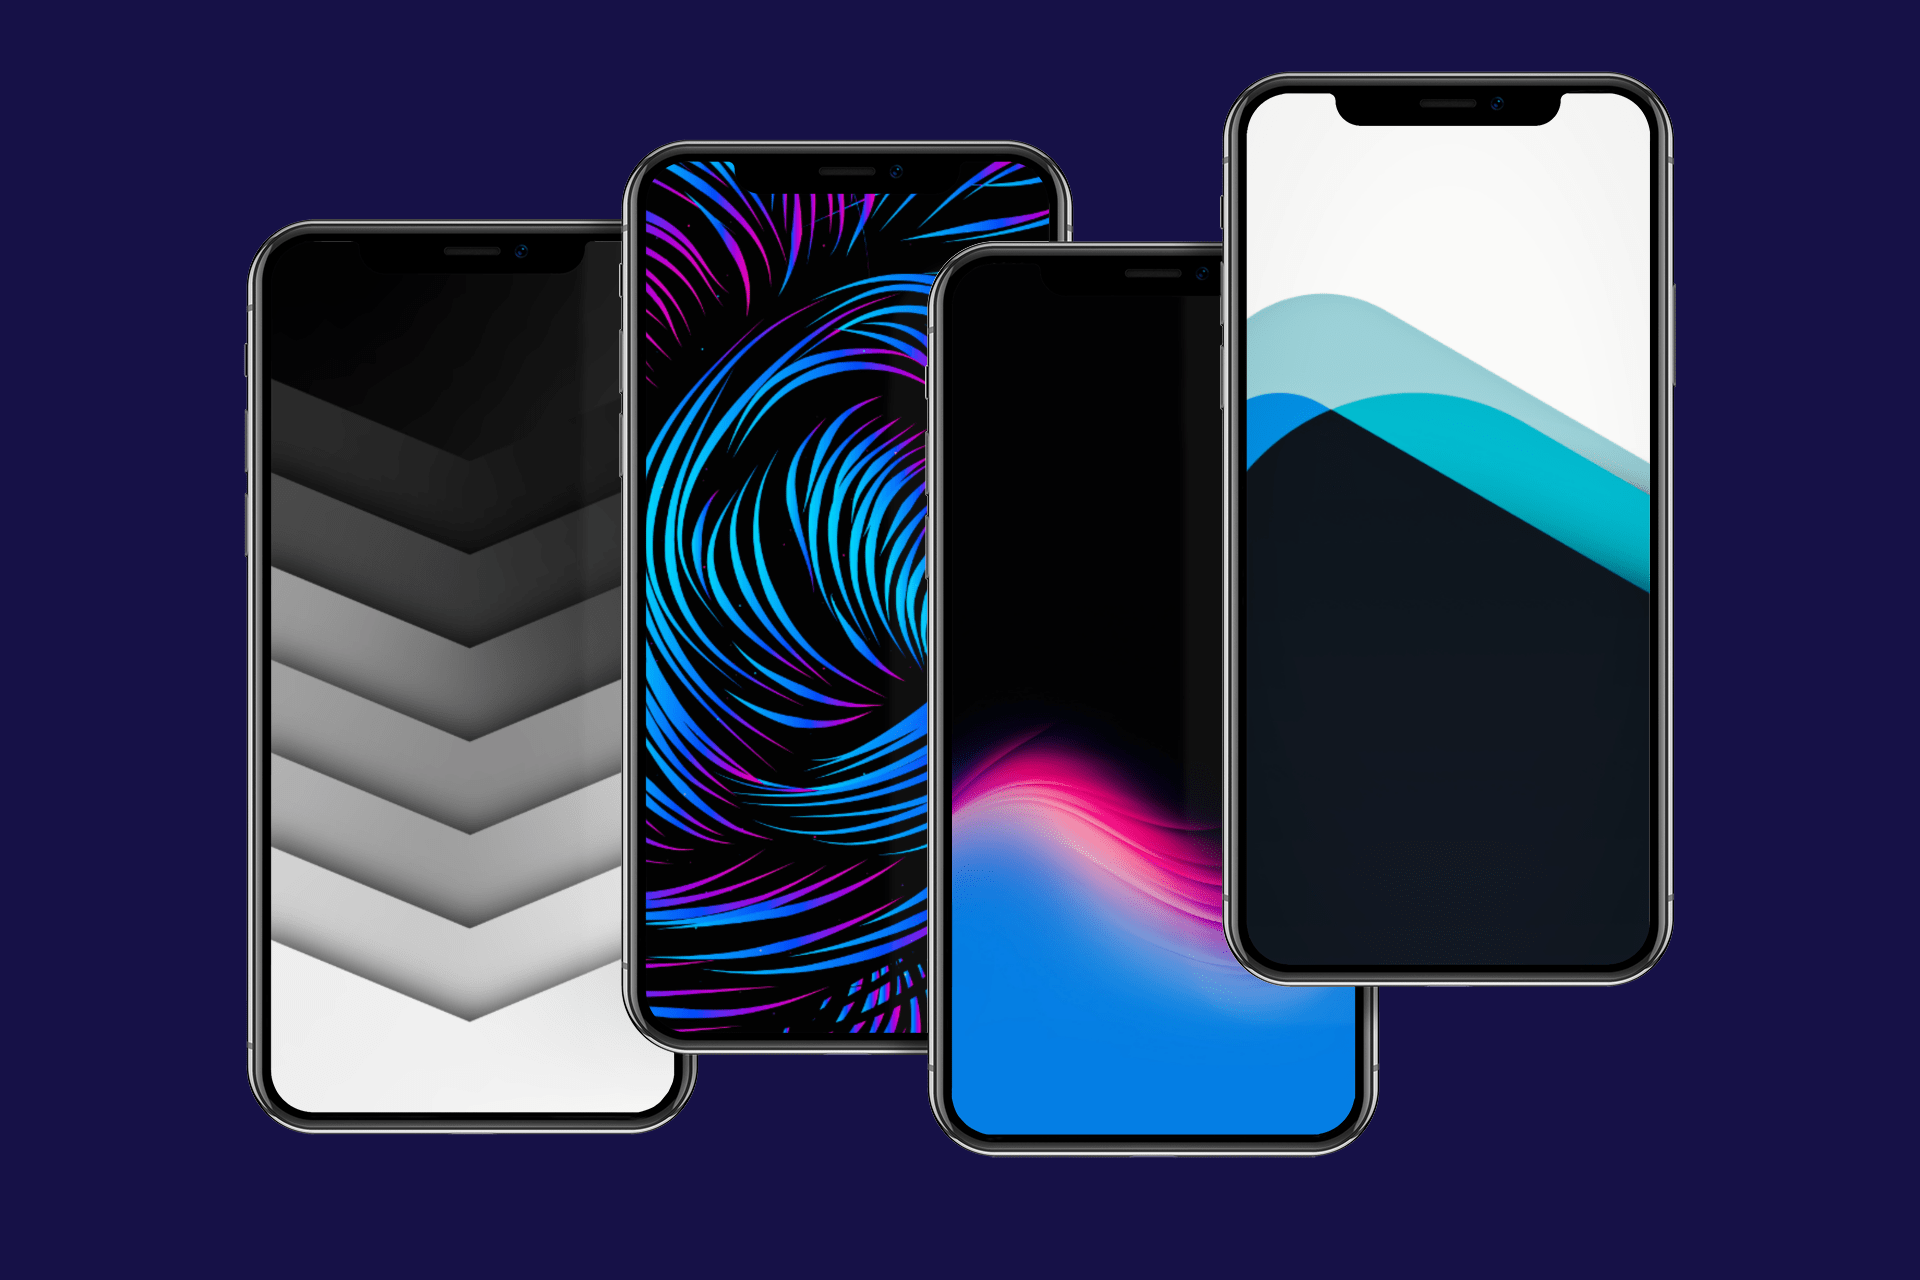 Top 10 iPhone wallpapers of 2019